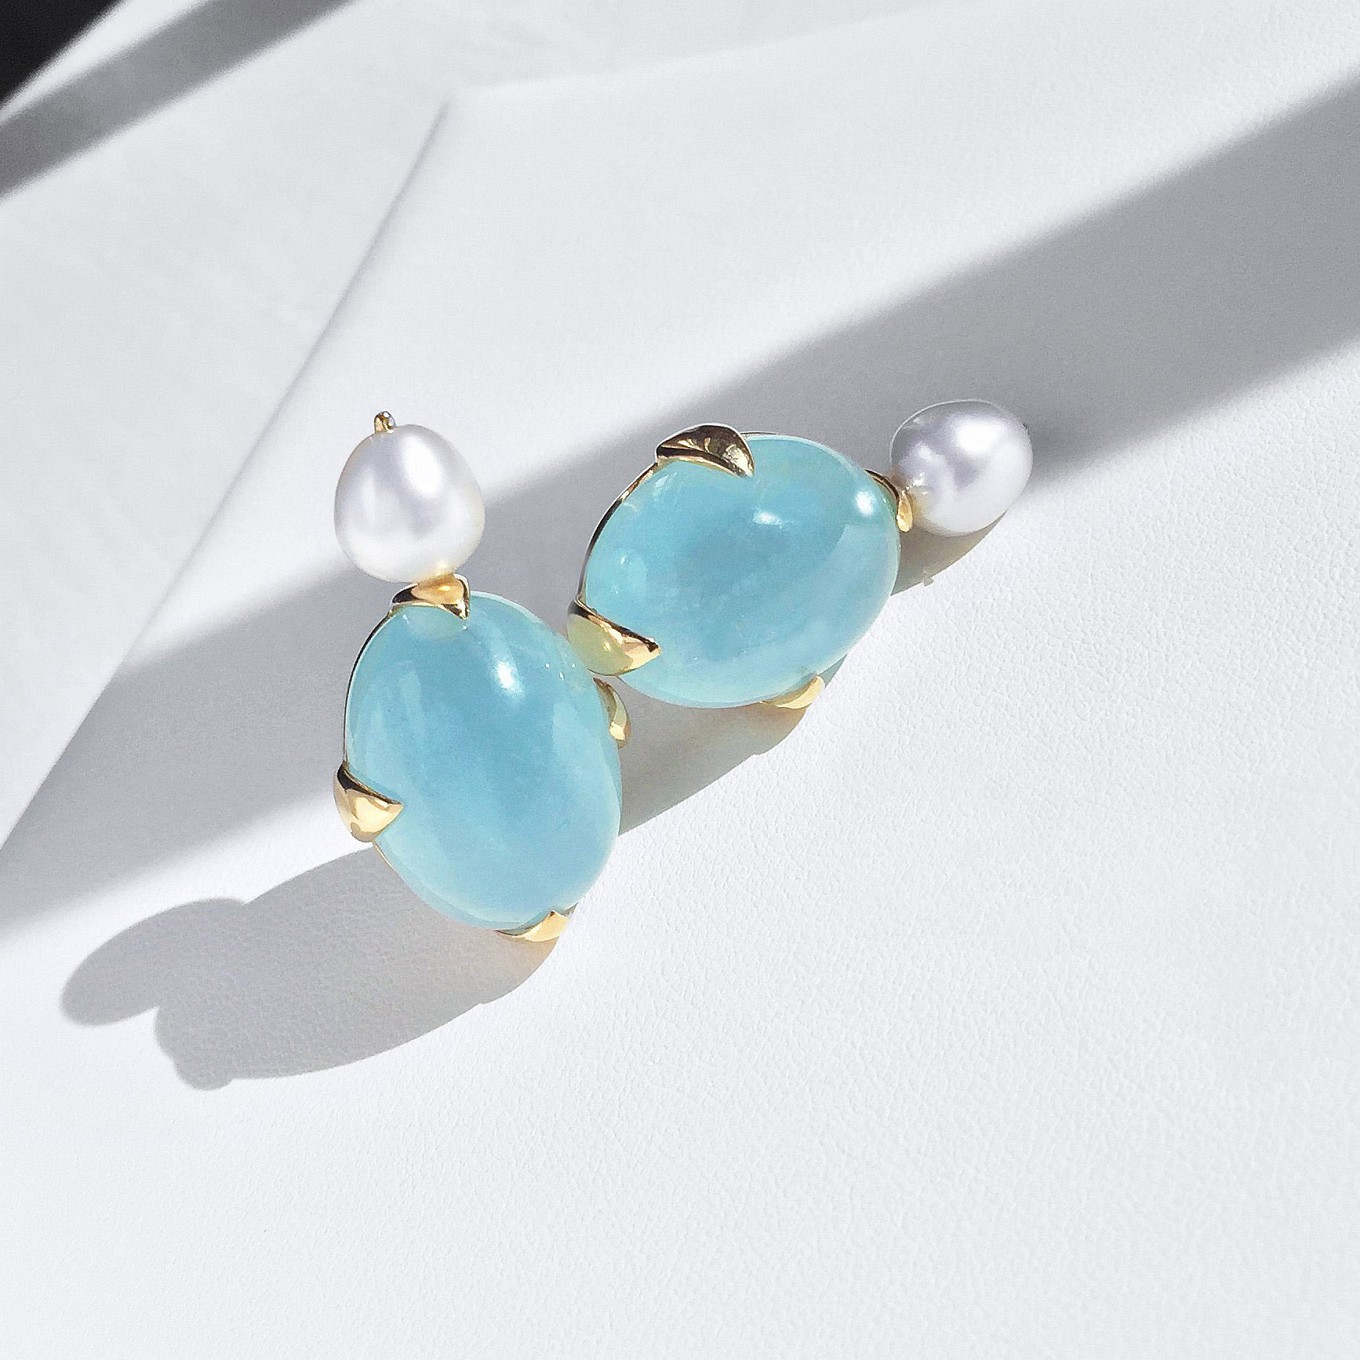 Aquamarine cabochon & pearl earrings. yellow gold